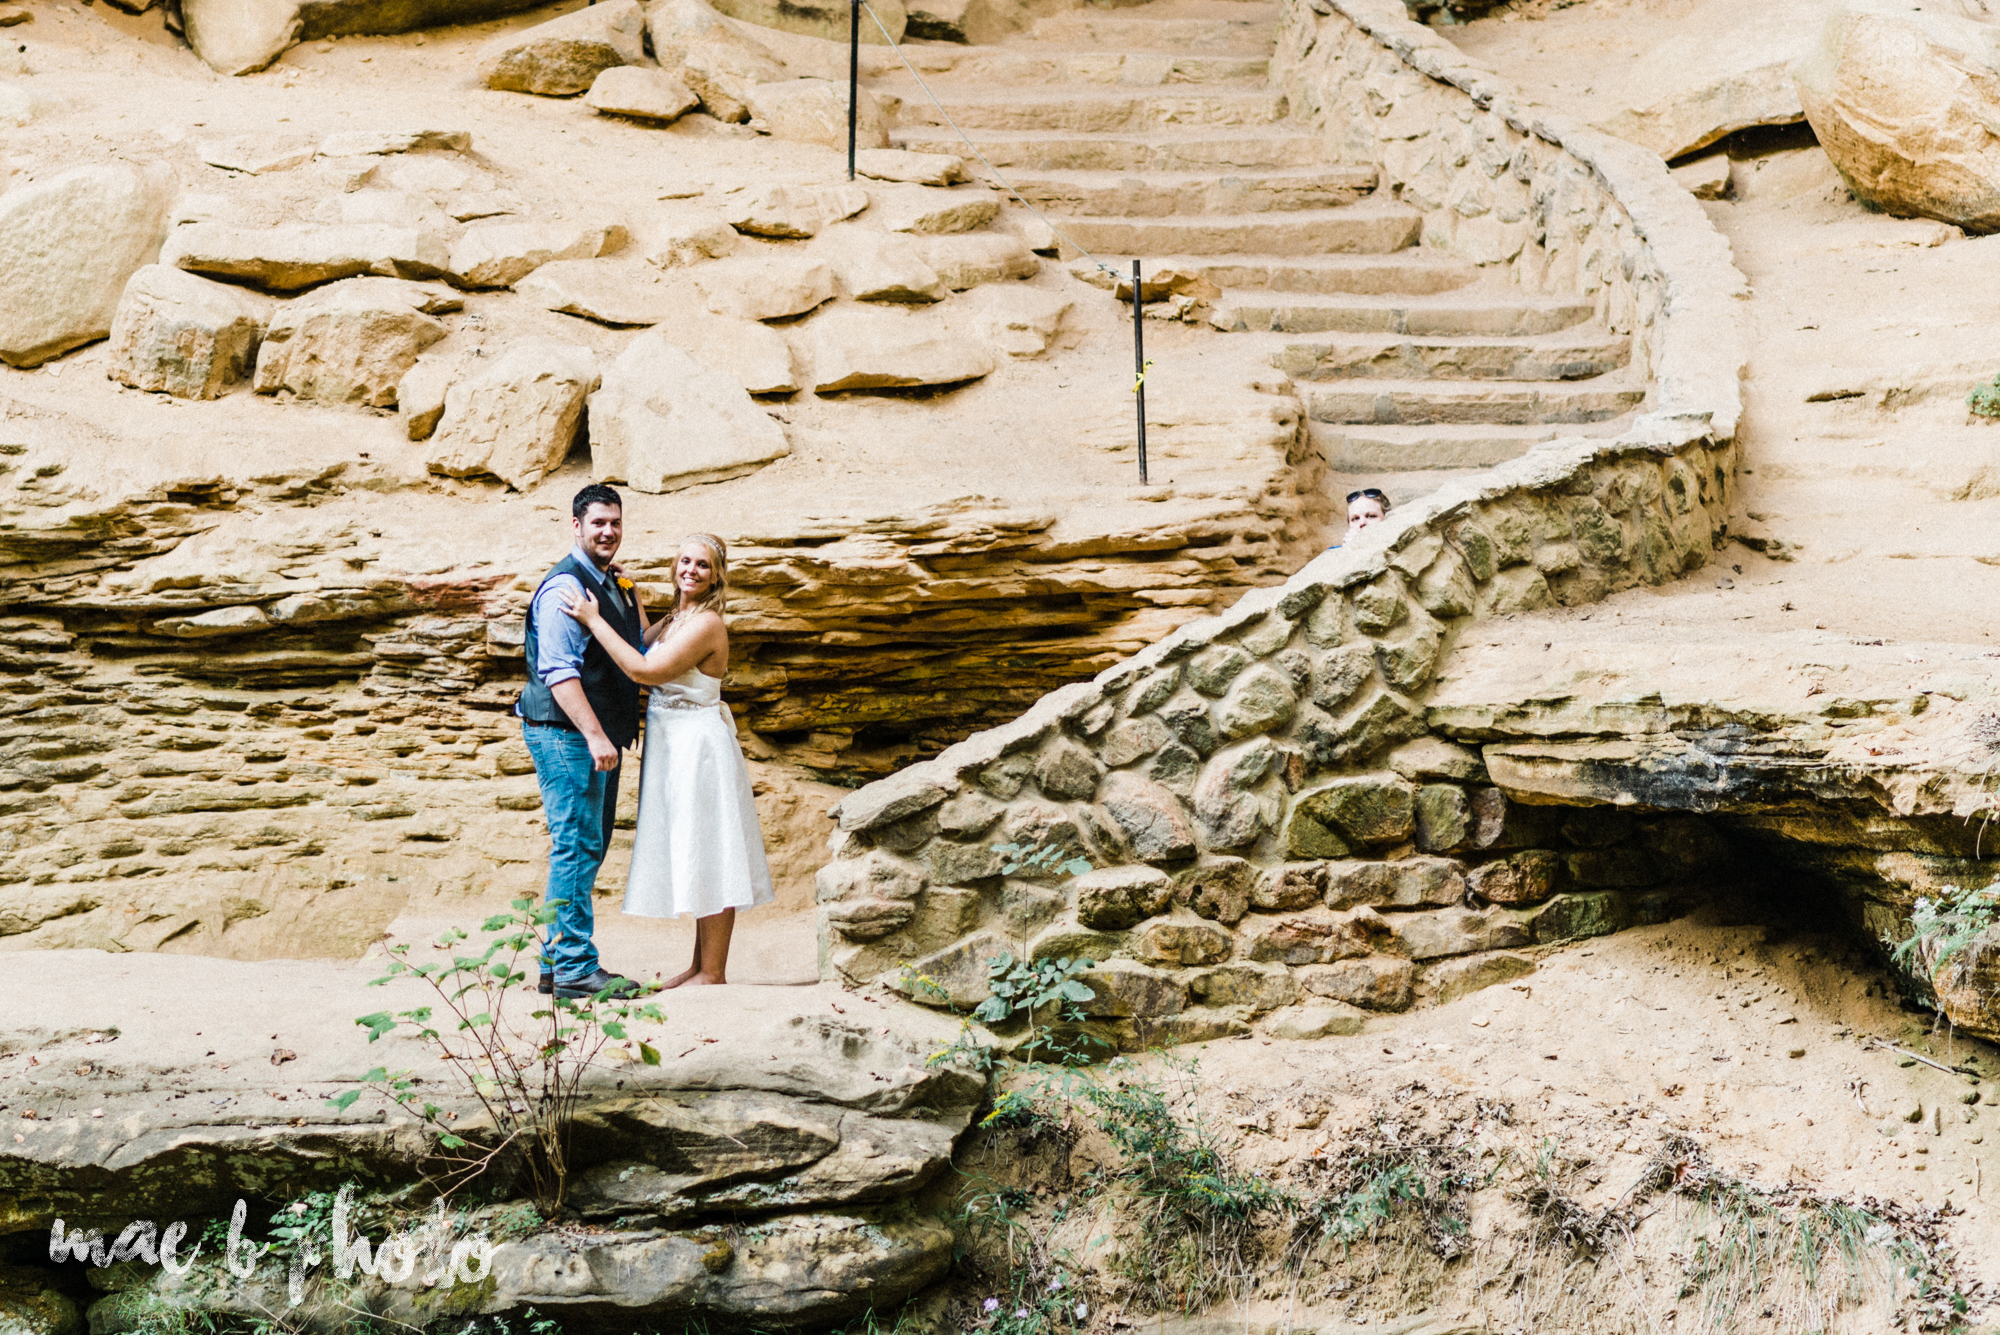 bobbi and pat's intimate fall cabin elopement in hocking hills old man's cave and rock house in logan ohio photographed by youngstown wedding photographer mae b photo-74.jpg